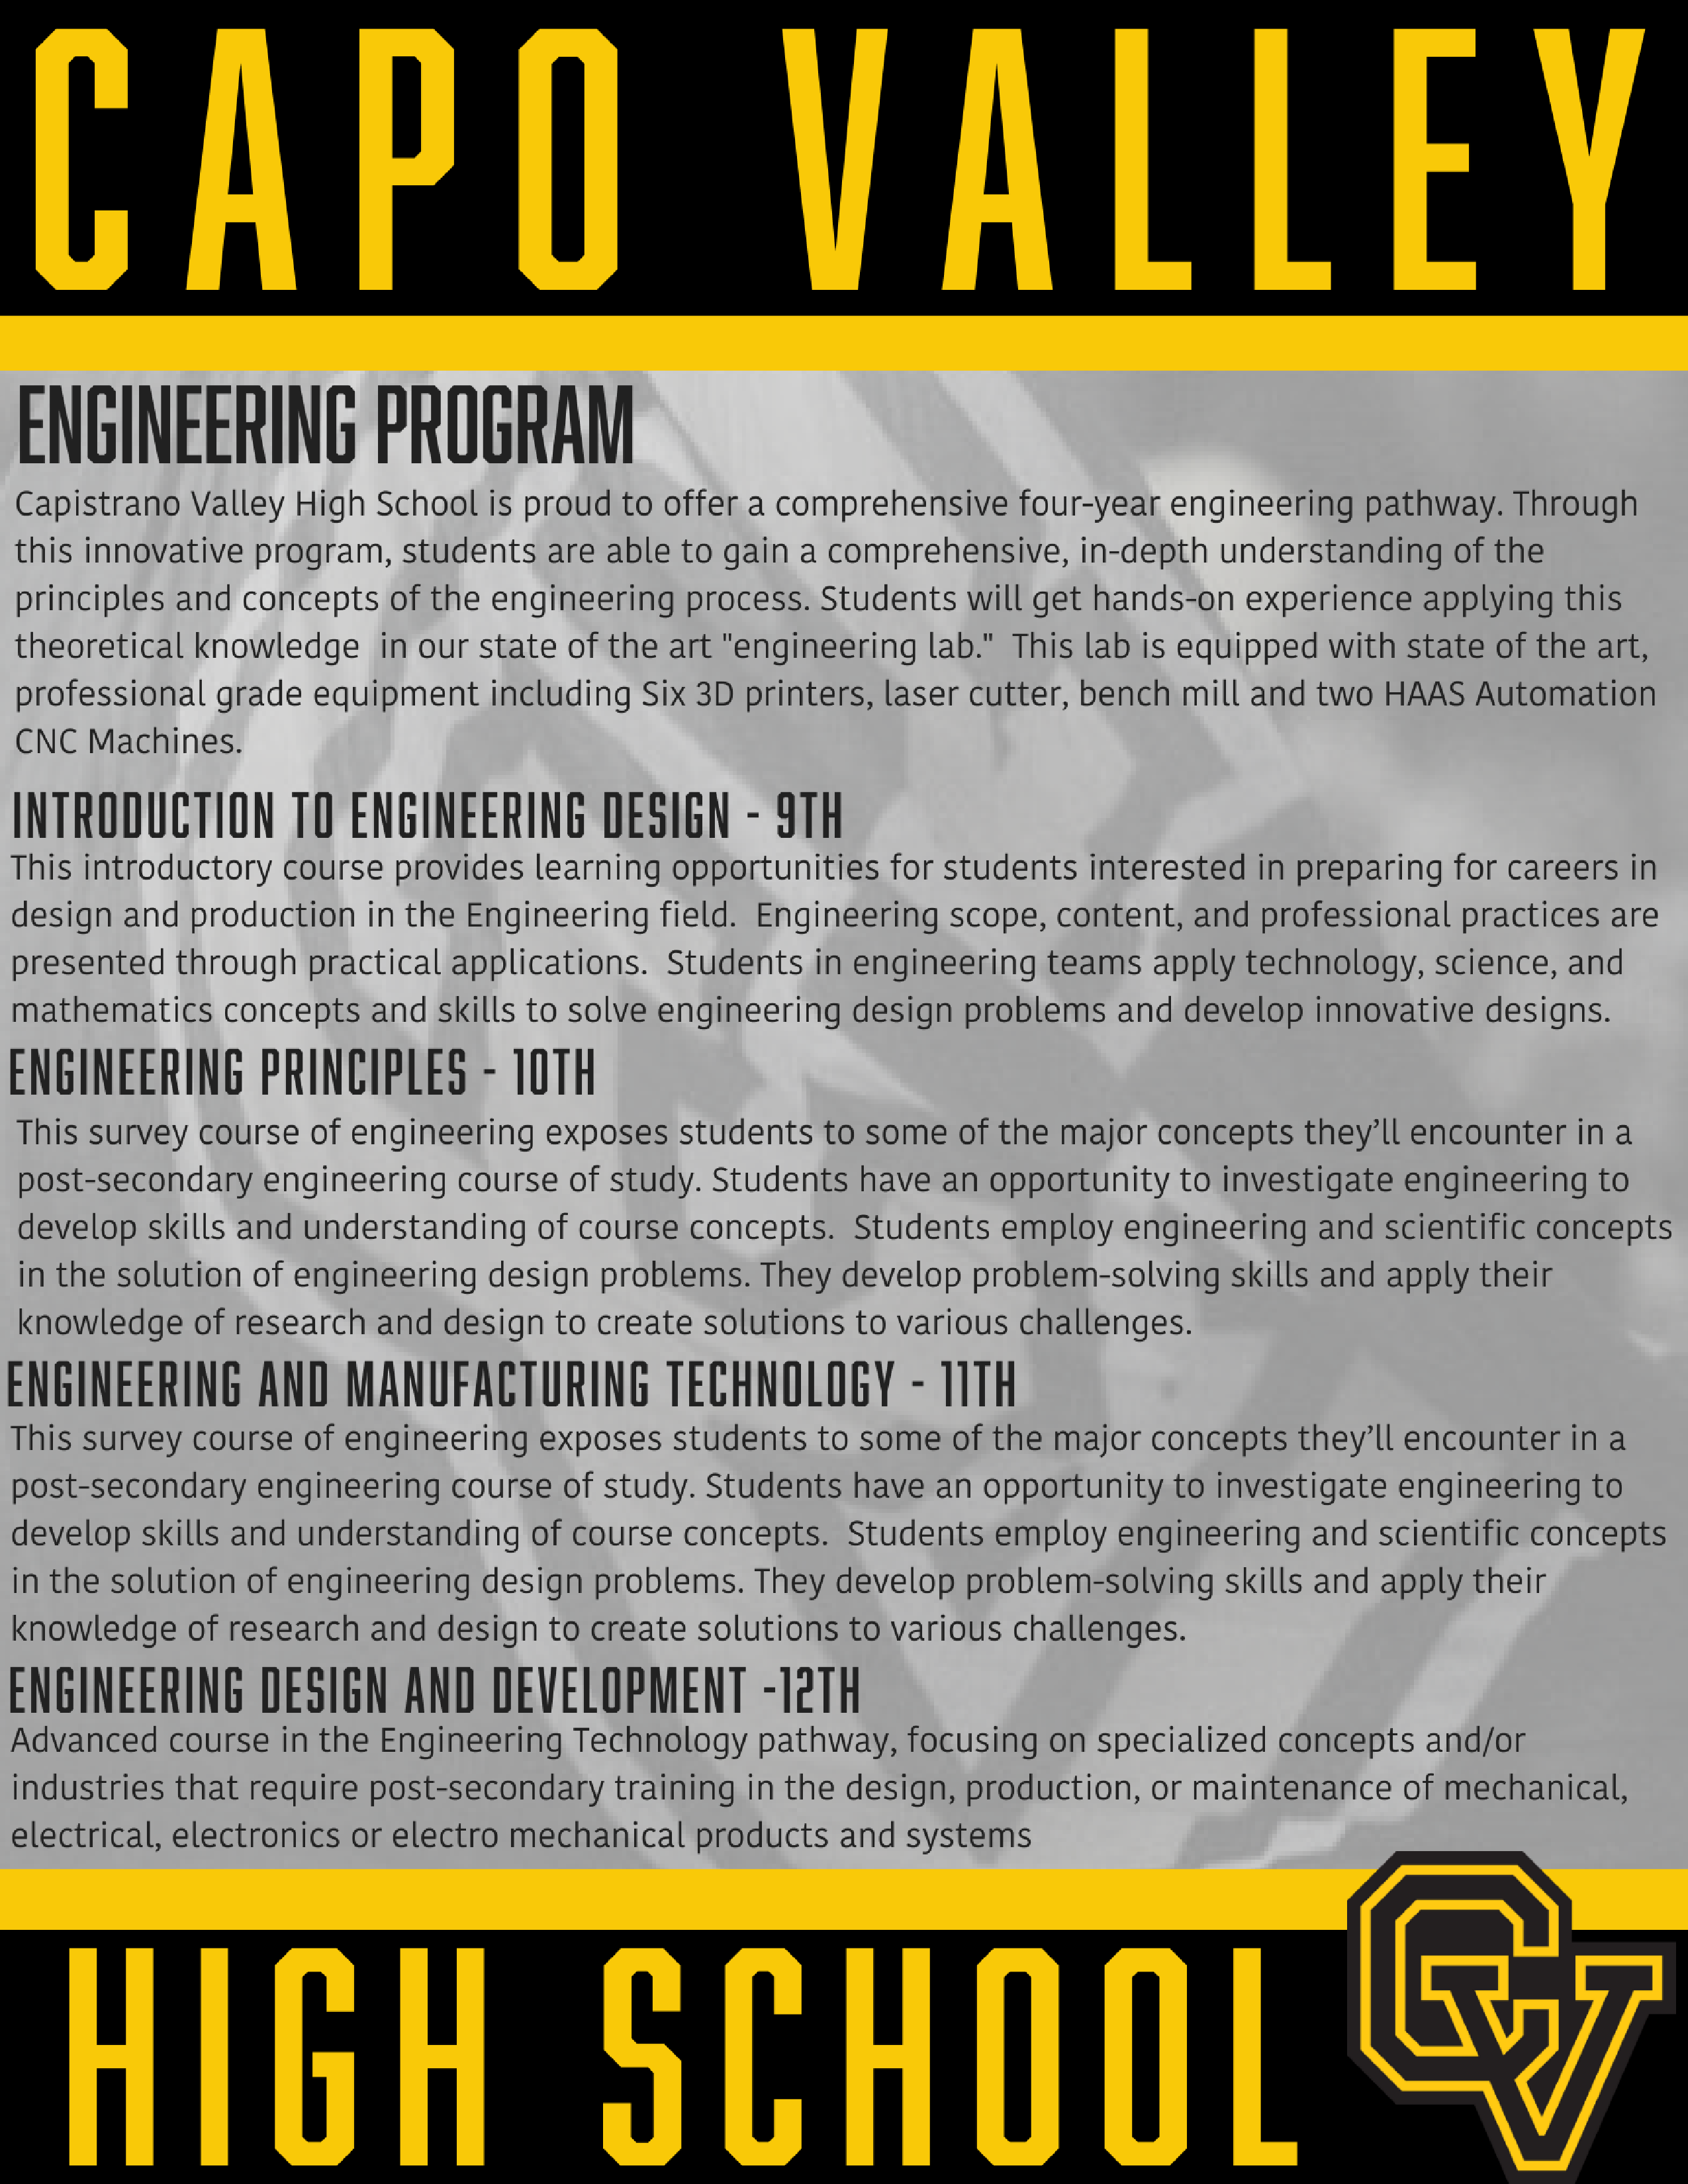 Capistrano Valley High School is proud to offer a comprehensive four-year  engineering pathway. Through this innovative program, students are able to gain  a comprehensive, in-depth understanding of the principles and concepts of the  engineering process. Students will get hands-on experience applying this  theoretical knowledge in our state of the art engineering lab. This lab is  equipped with state of the art, professional grade equipment including Six 3D  printers, laser cutter, bench mill and two HAAS Automation CNC Machines. Come  see why we are the choice for high school engineering in Orange County. Orange  County Engineering Program. South Orange County Engineering.